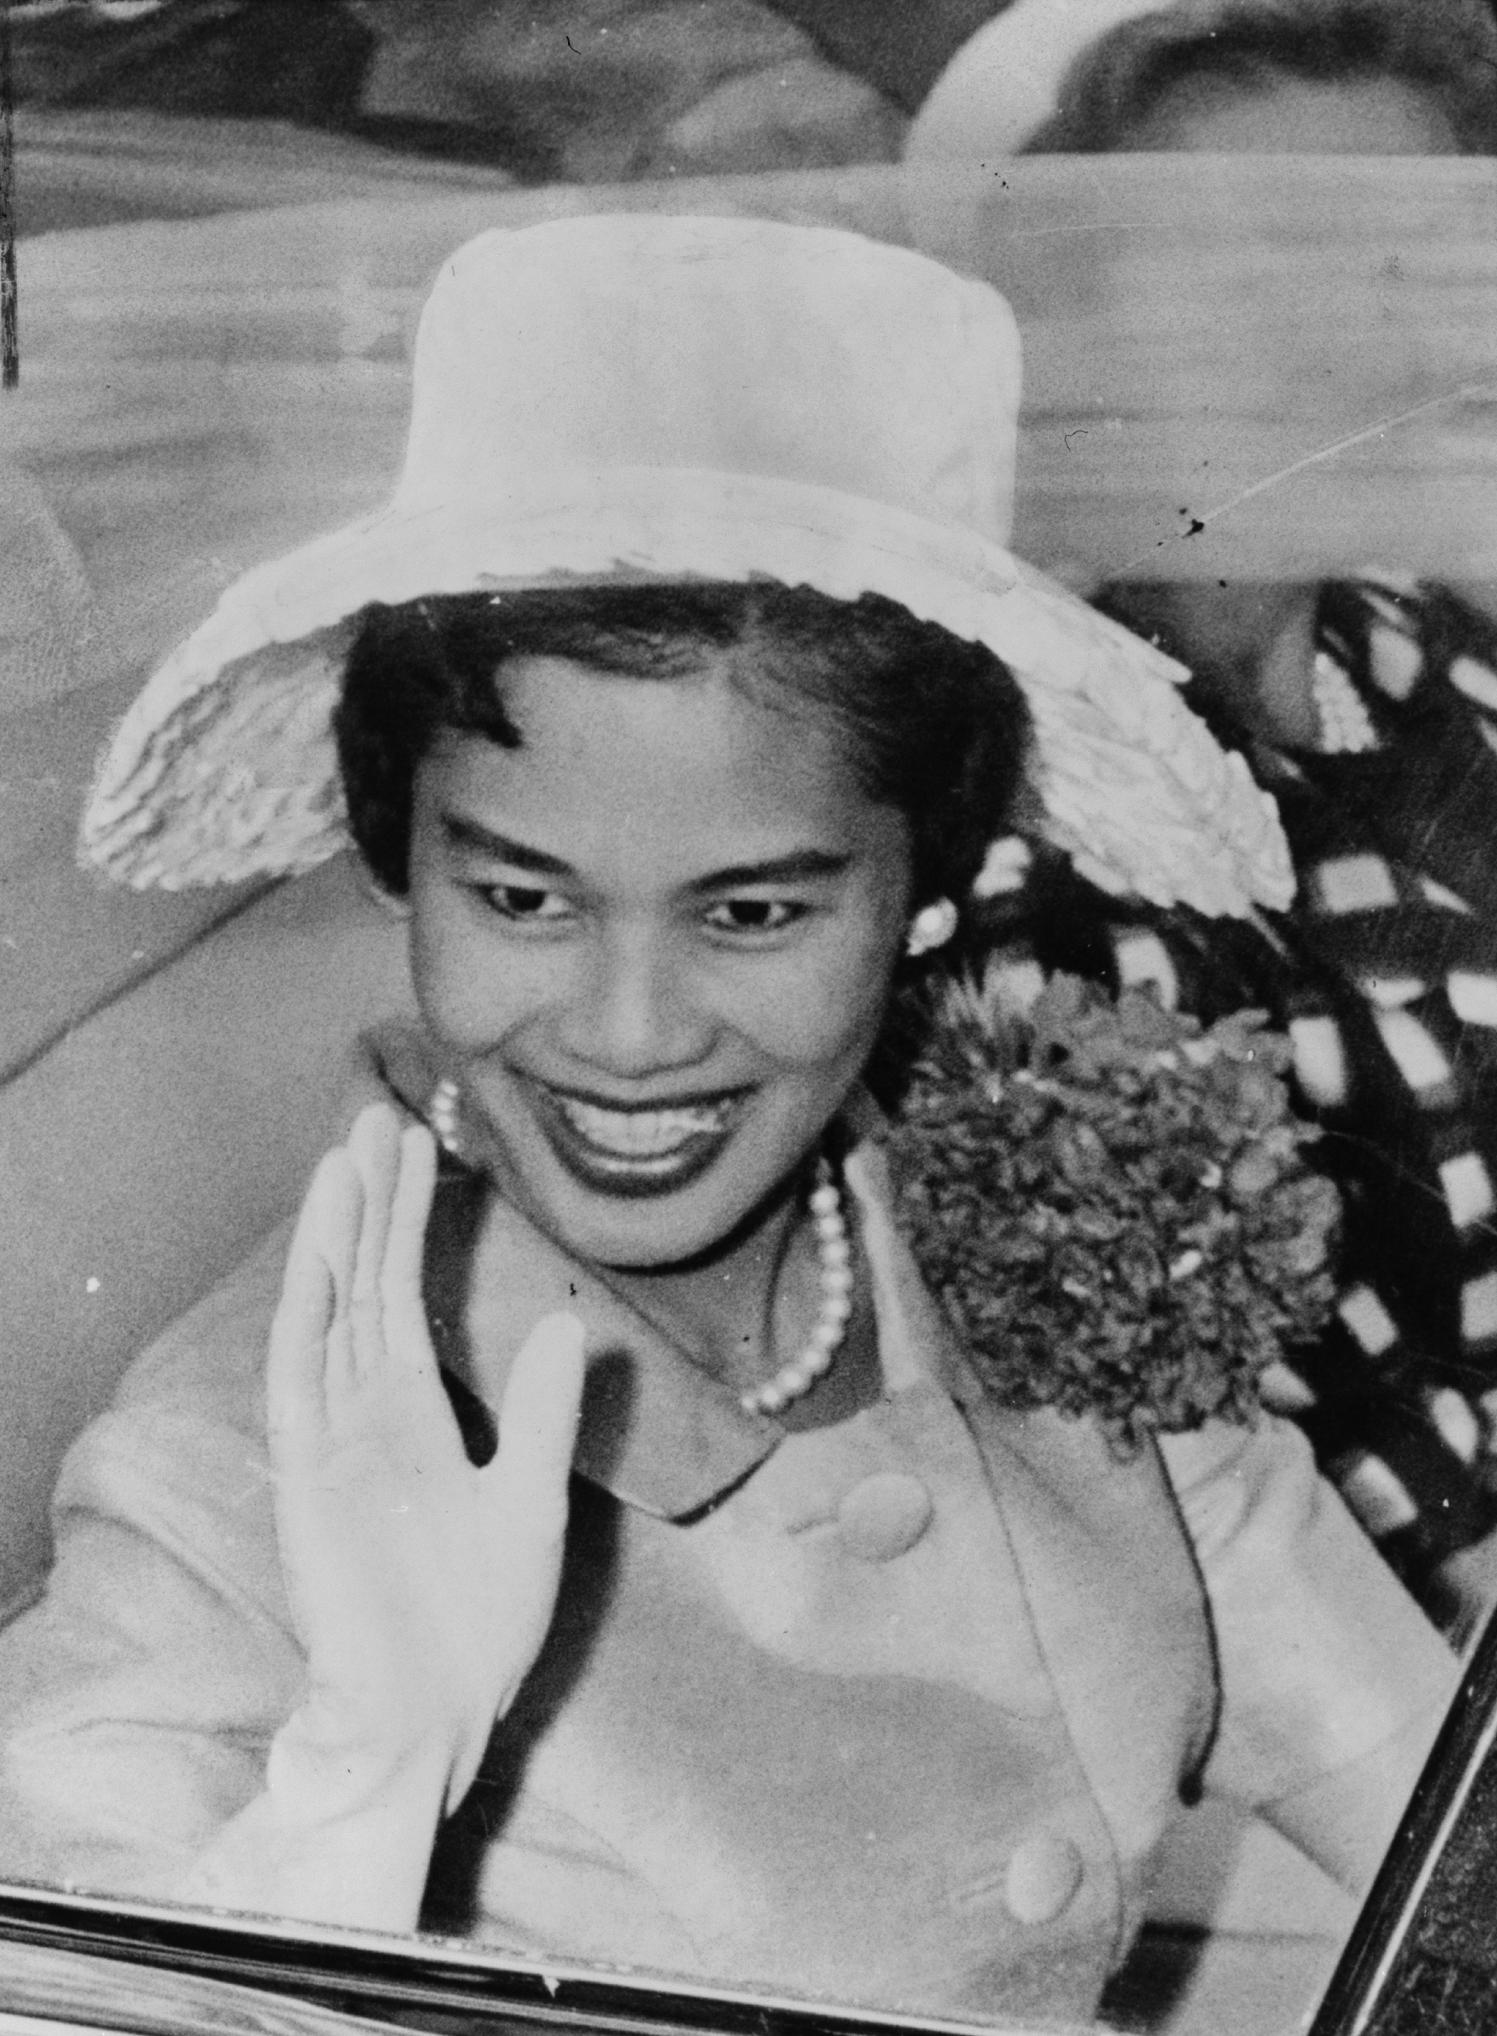 Queen Sirikit of Thailand during a visit to New York City on July 7, 1960, A ticker-tape parade was given in honor of her and King Bhumibol Adulyadej on that date. Photo taken by Phil Stanziola, New York World Telegram staff photographer. From the Library of Congress New York World-Telegram & Sun Collection.